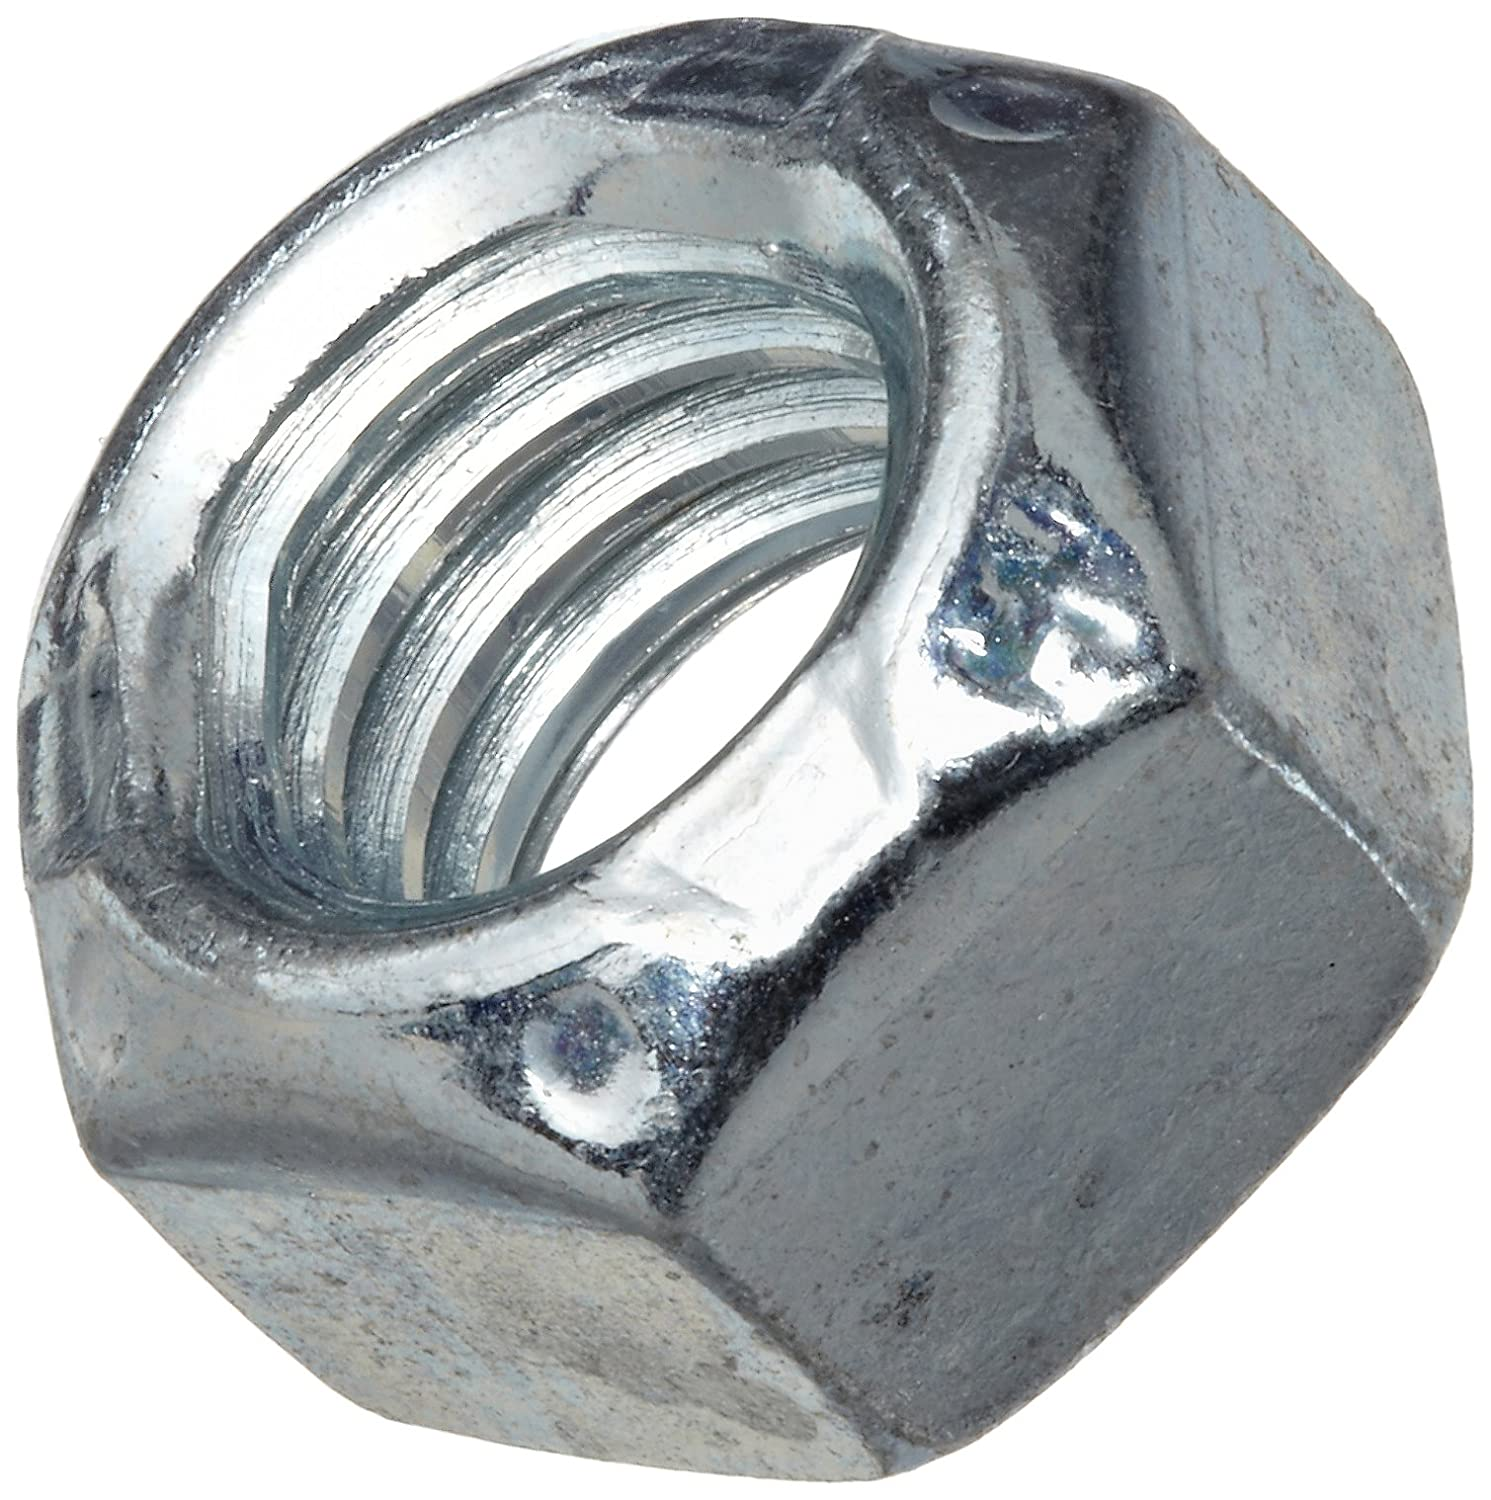 Grade C 3//8-16 Threads Pack of 100 Self-Locking Top Lock Right Hand Threads Steel Hex Nut Zinc Plated Finish